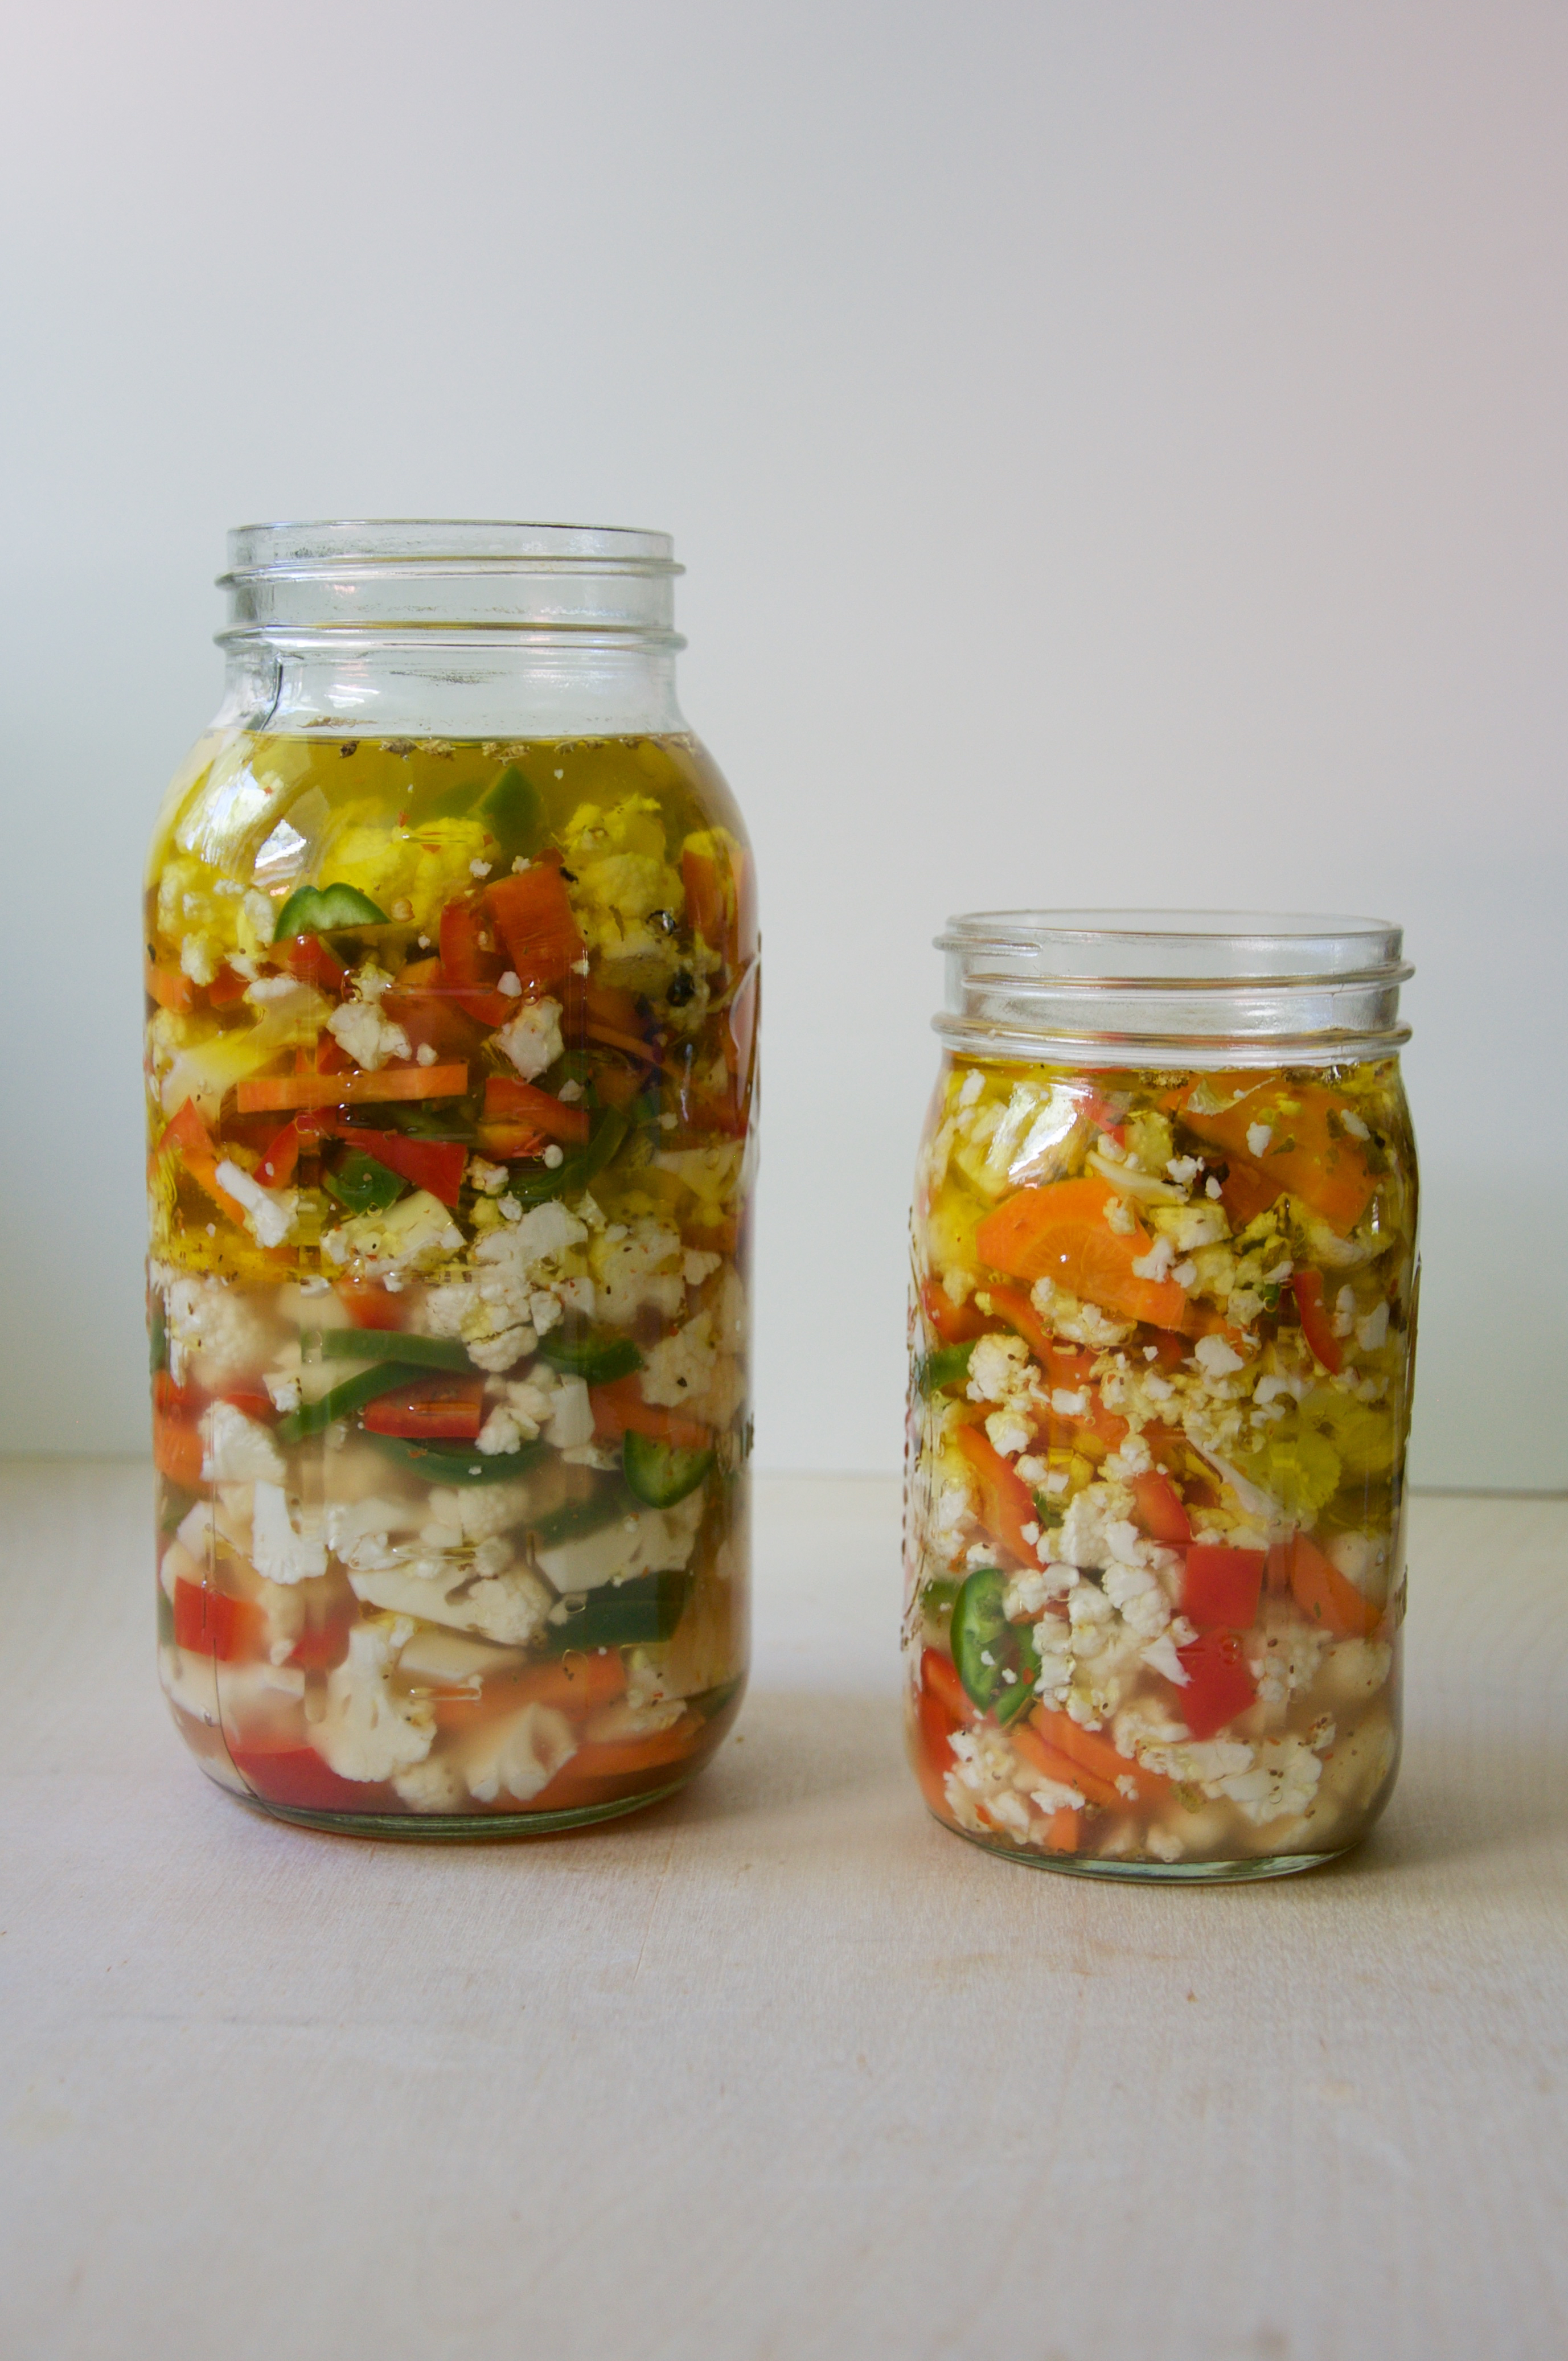 Pickled Giardiniera Recipe // @nicoledula